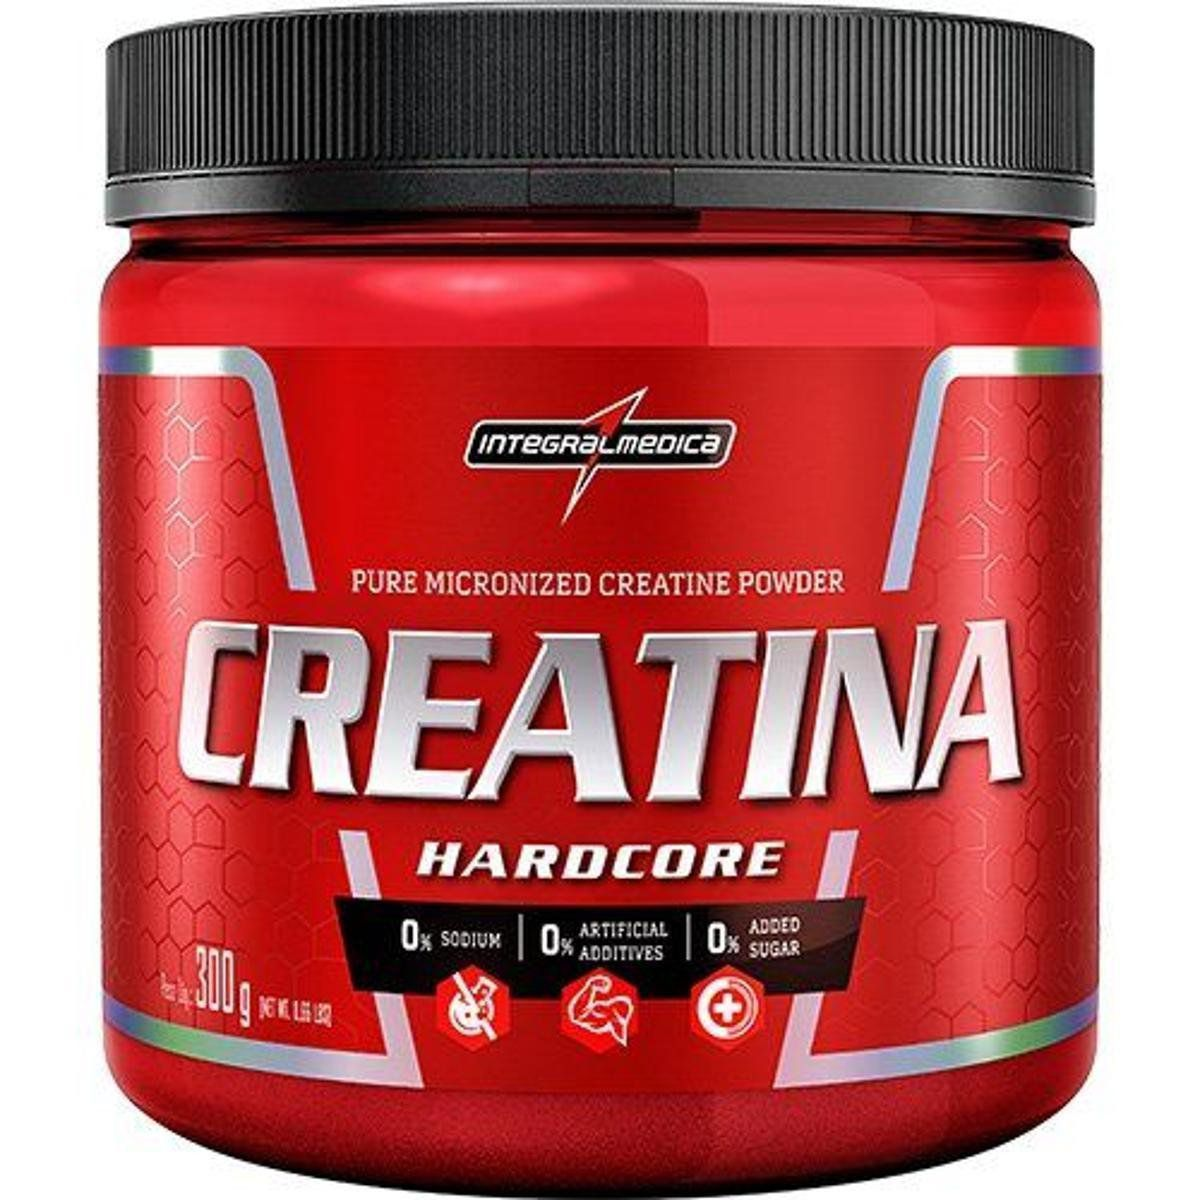 Creatina Hardcore 300g Integralmedica